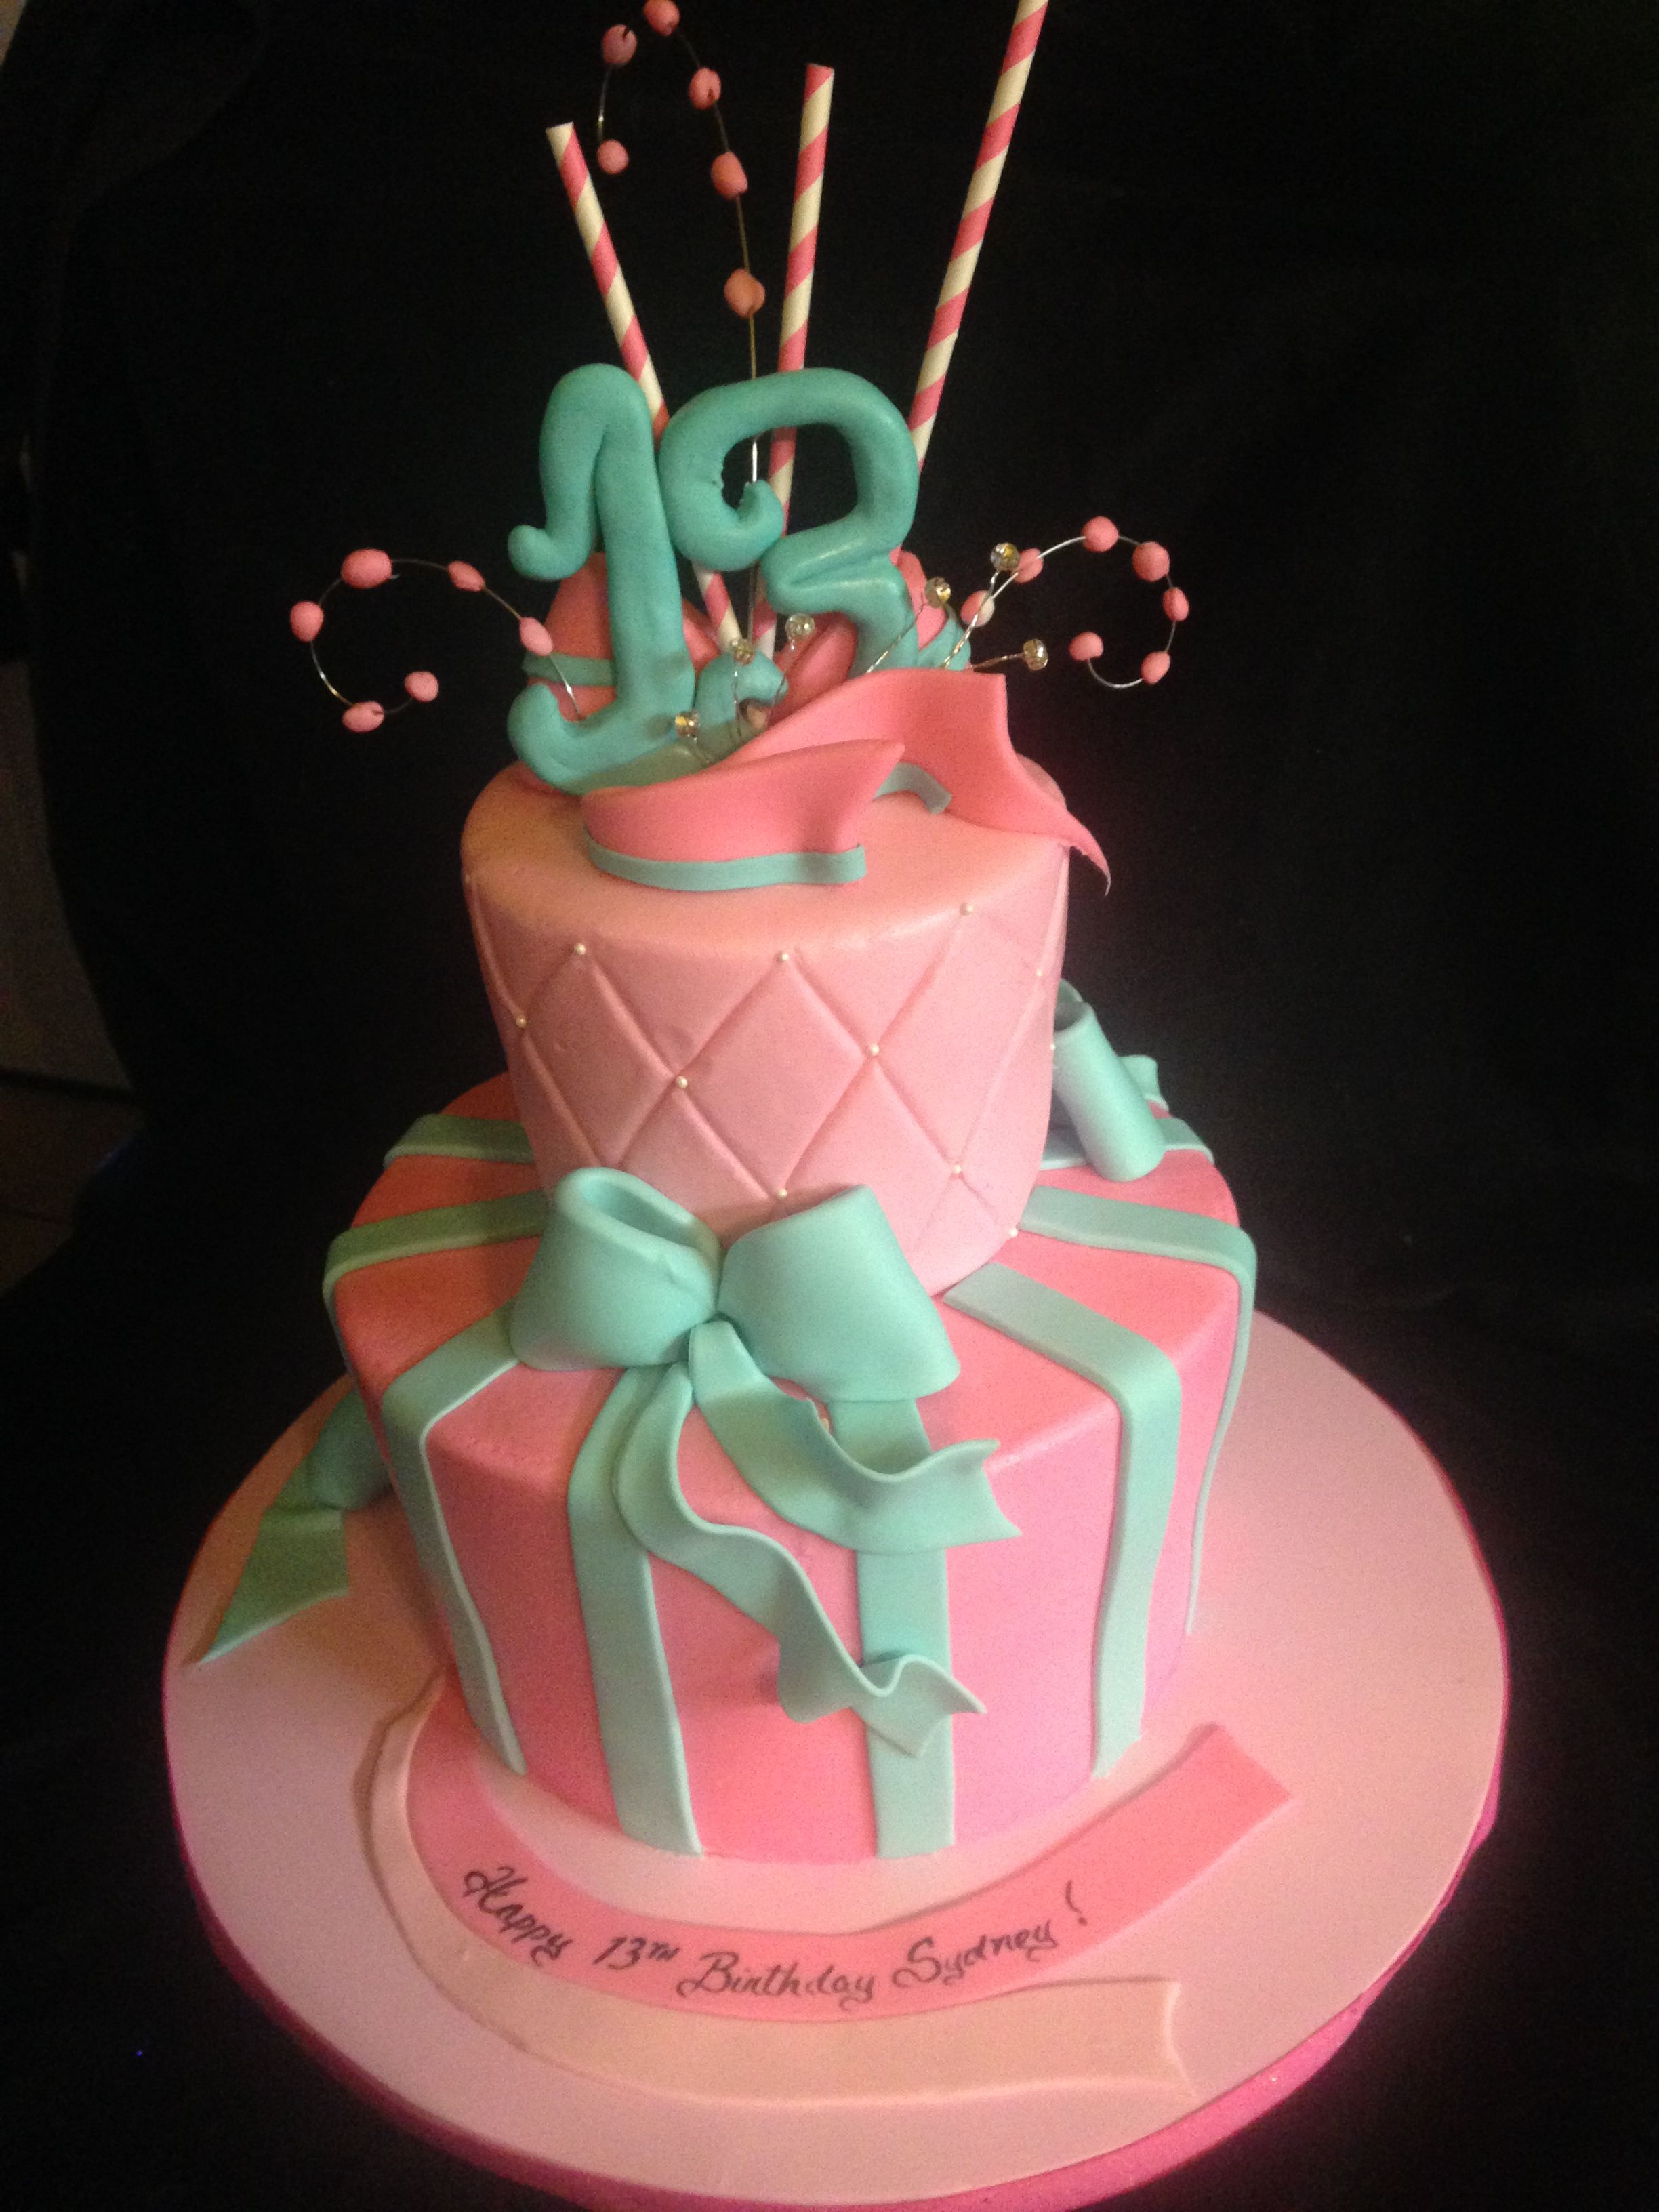 13Th Birthday Cake Happy 13th A Butter Cream And Fondant Details 2 Tier Design